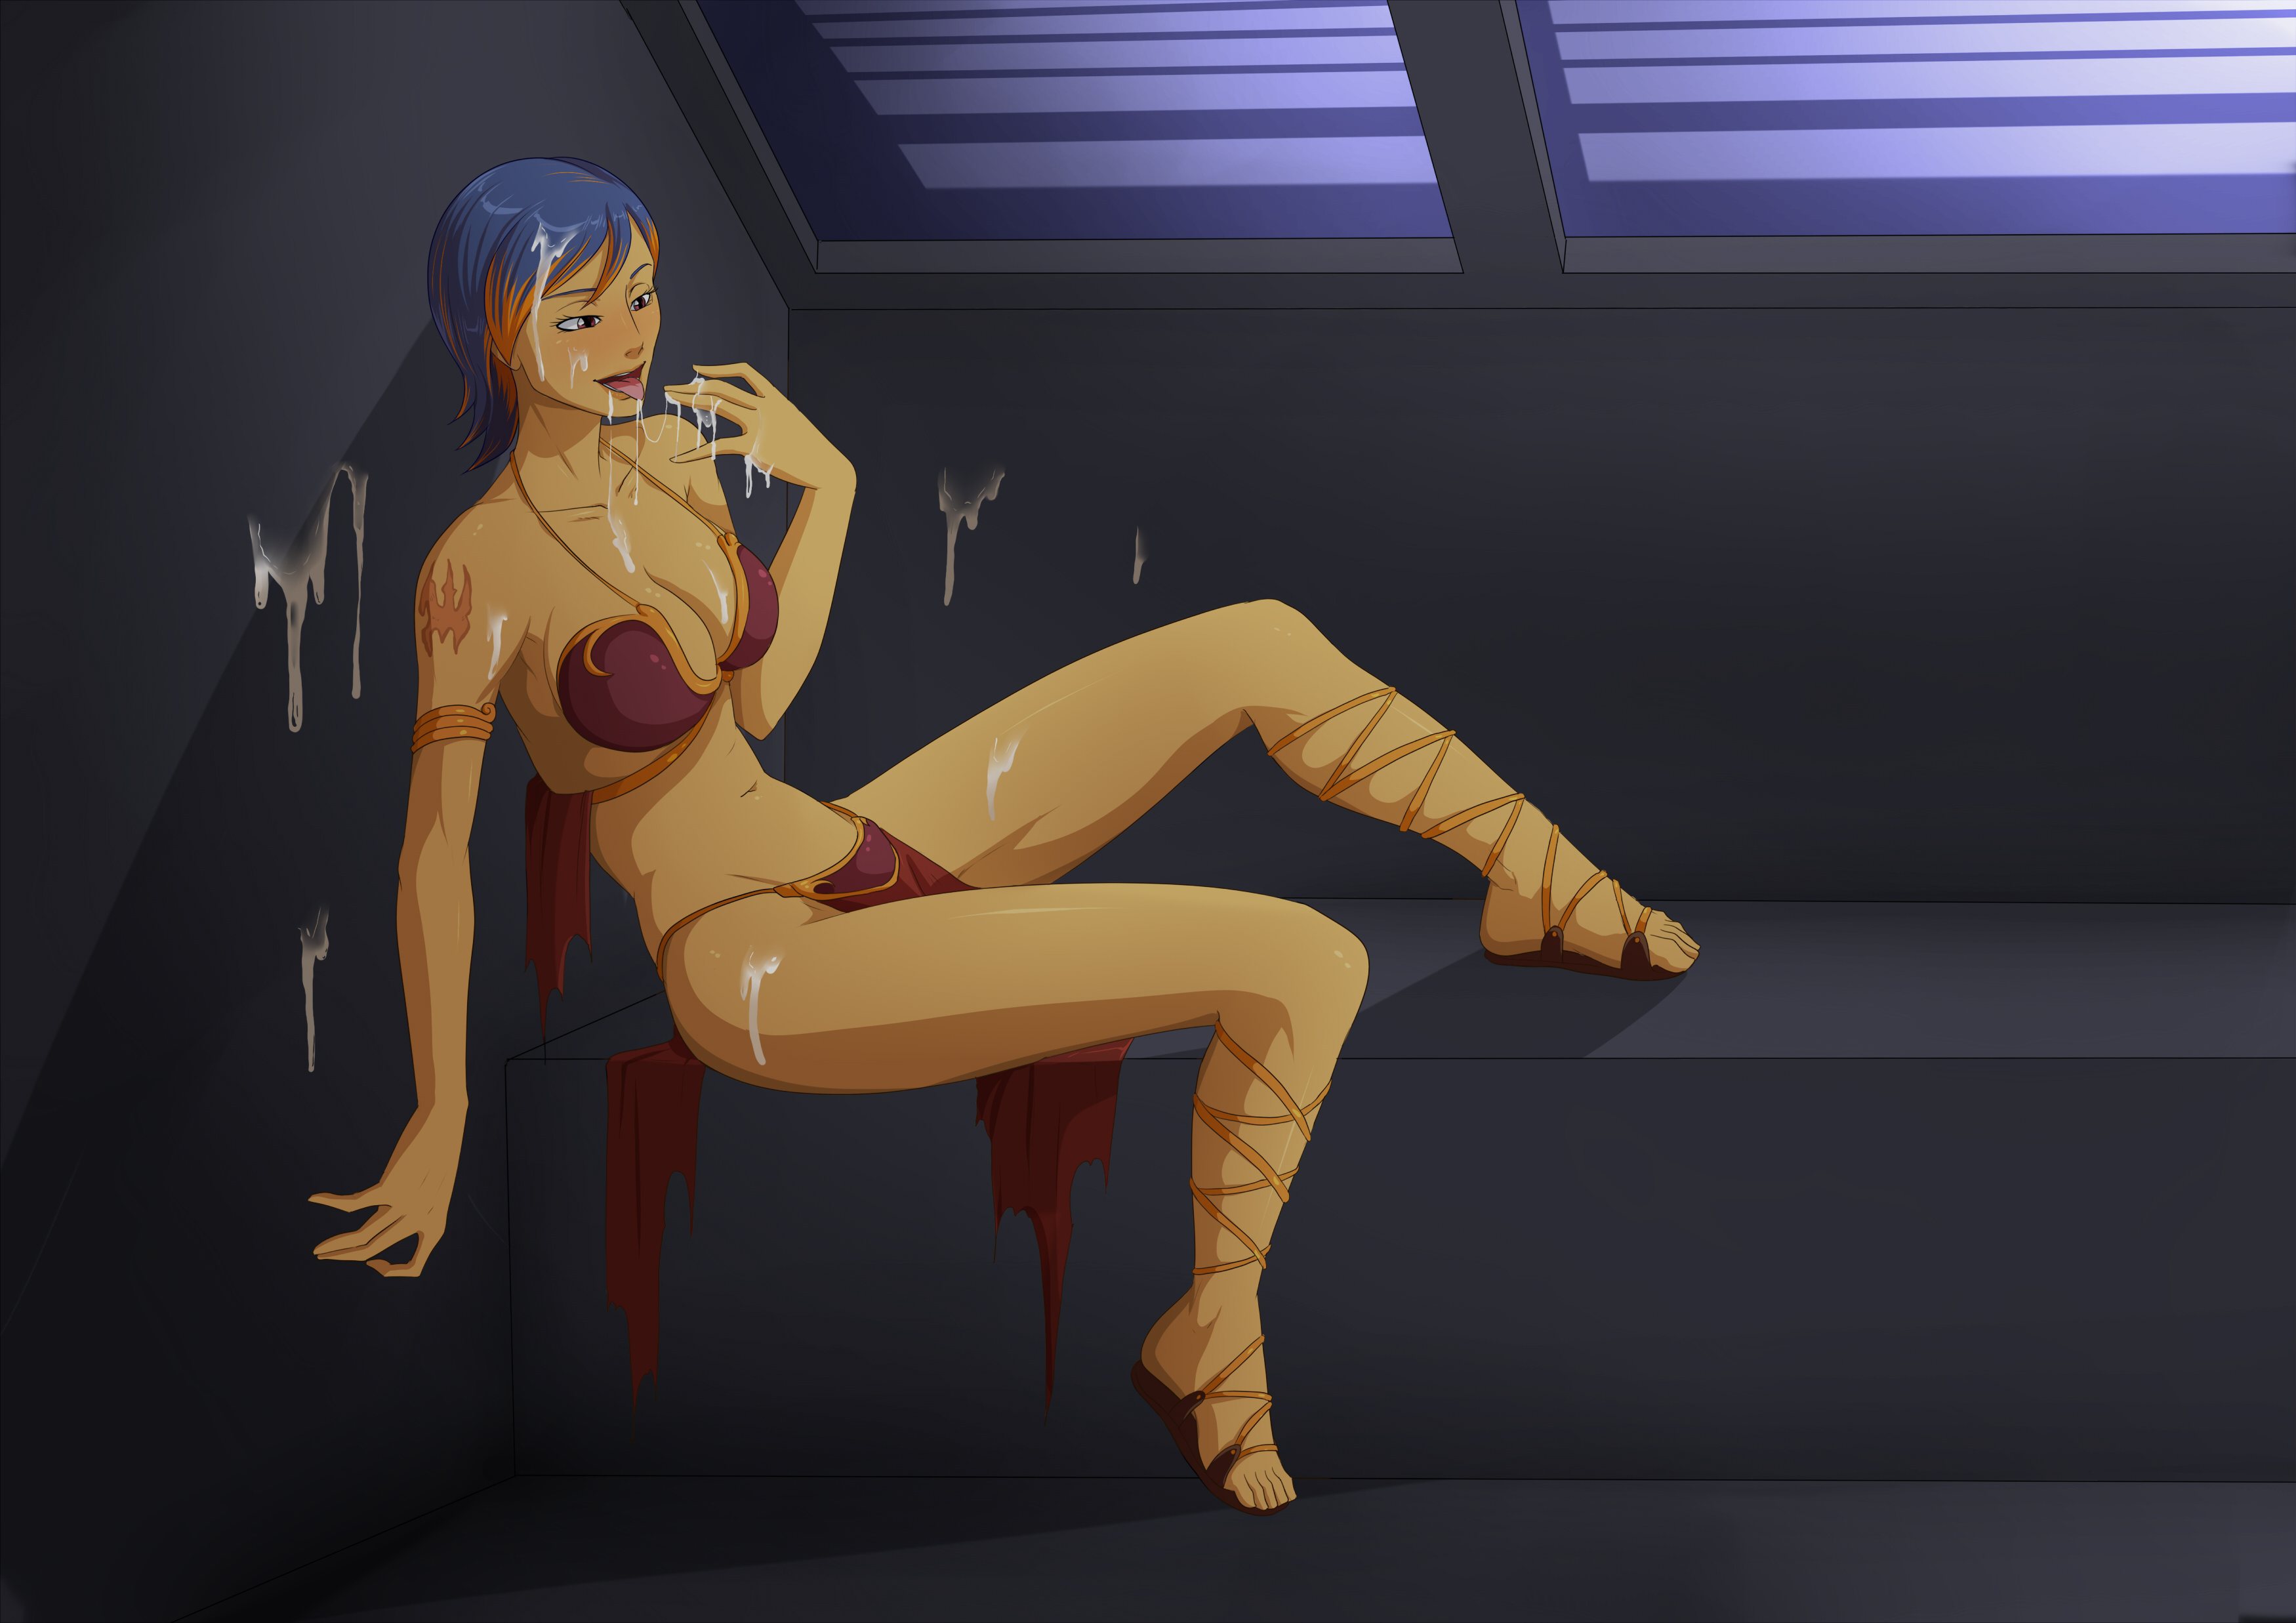 Try reasonable. Naked famle lesbian star wars